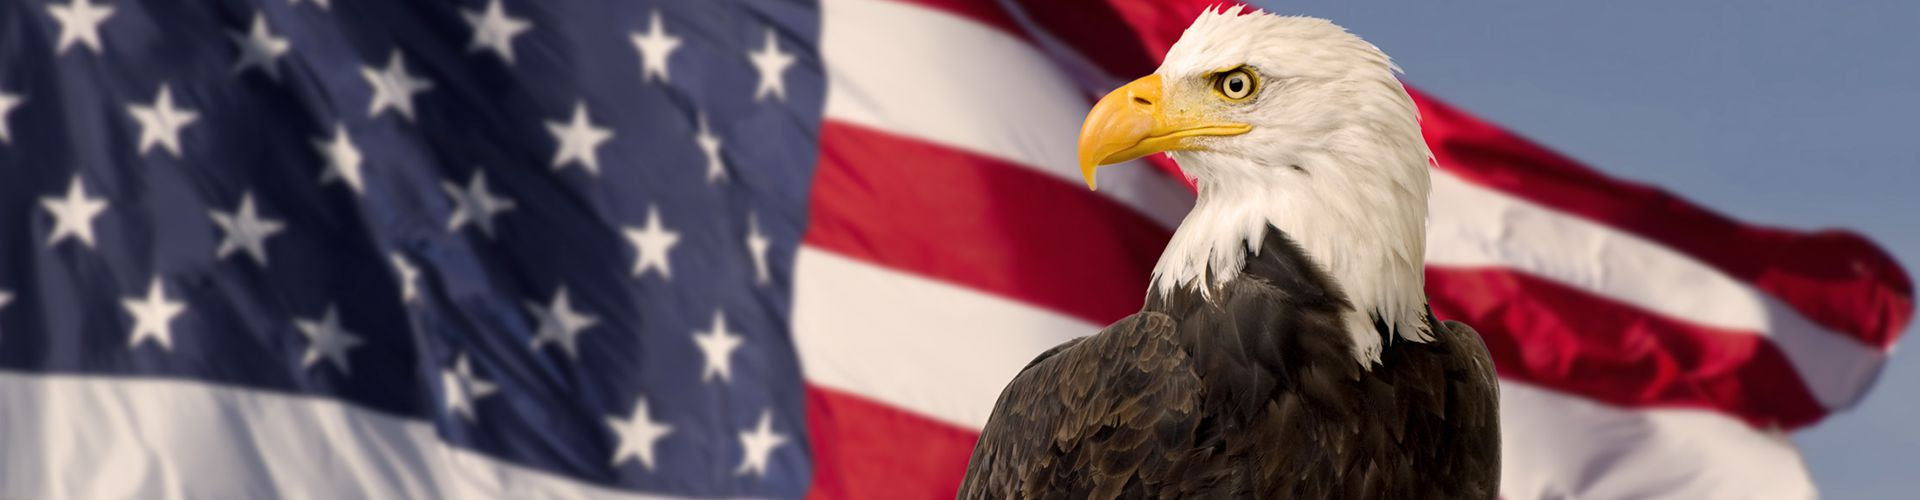 image of eagle in front of american flag